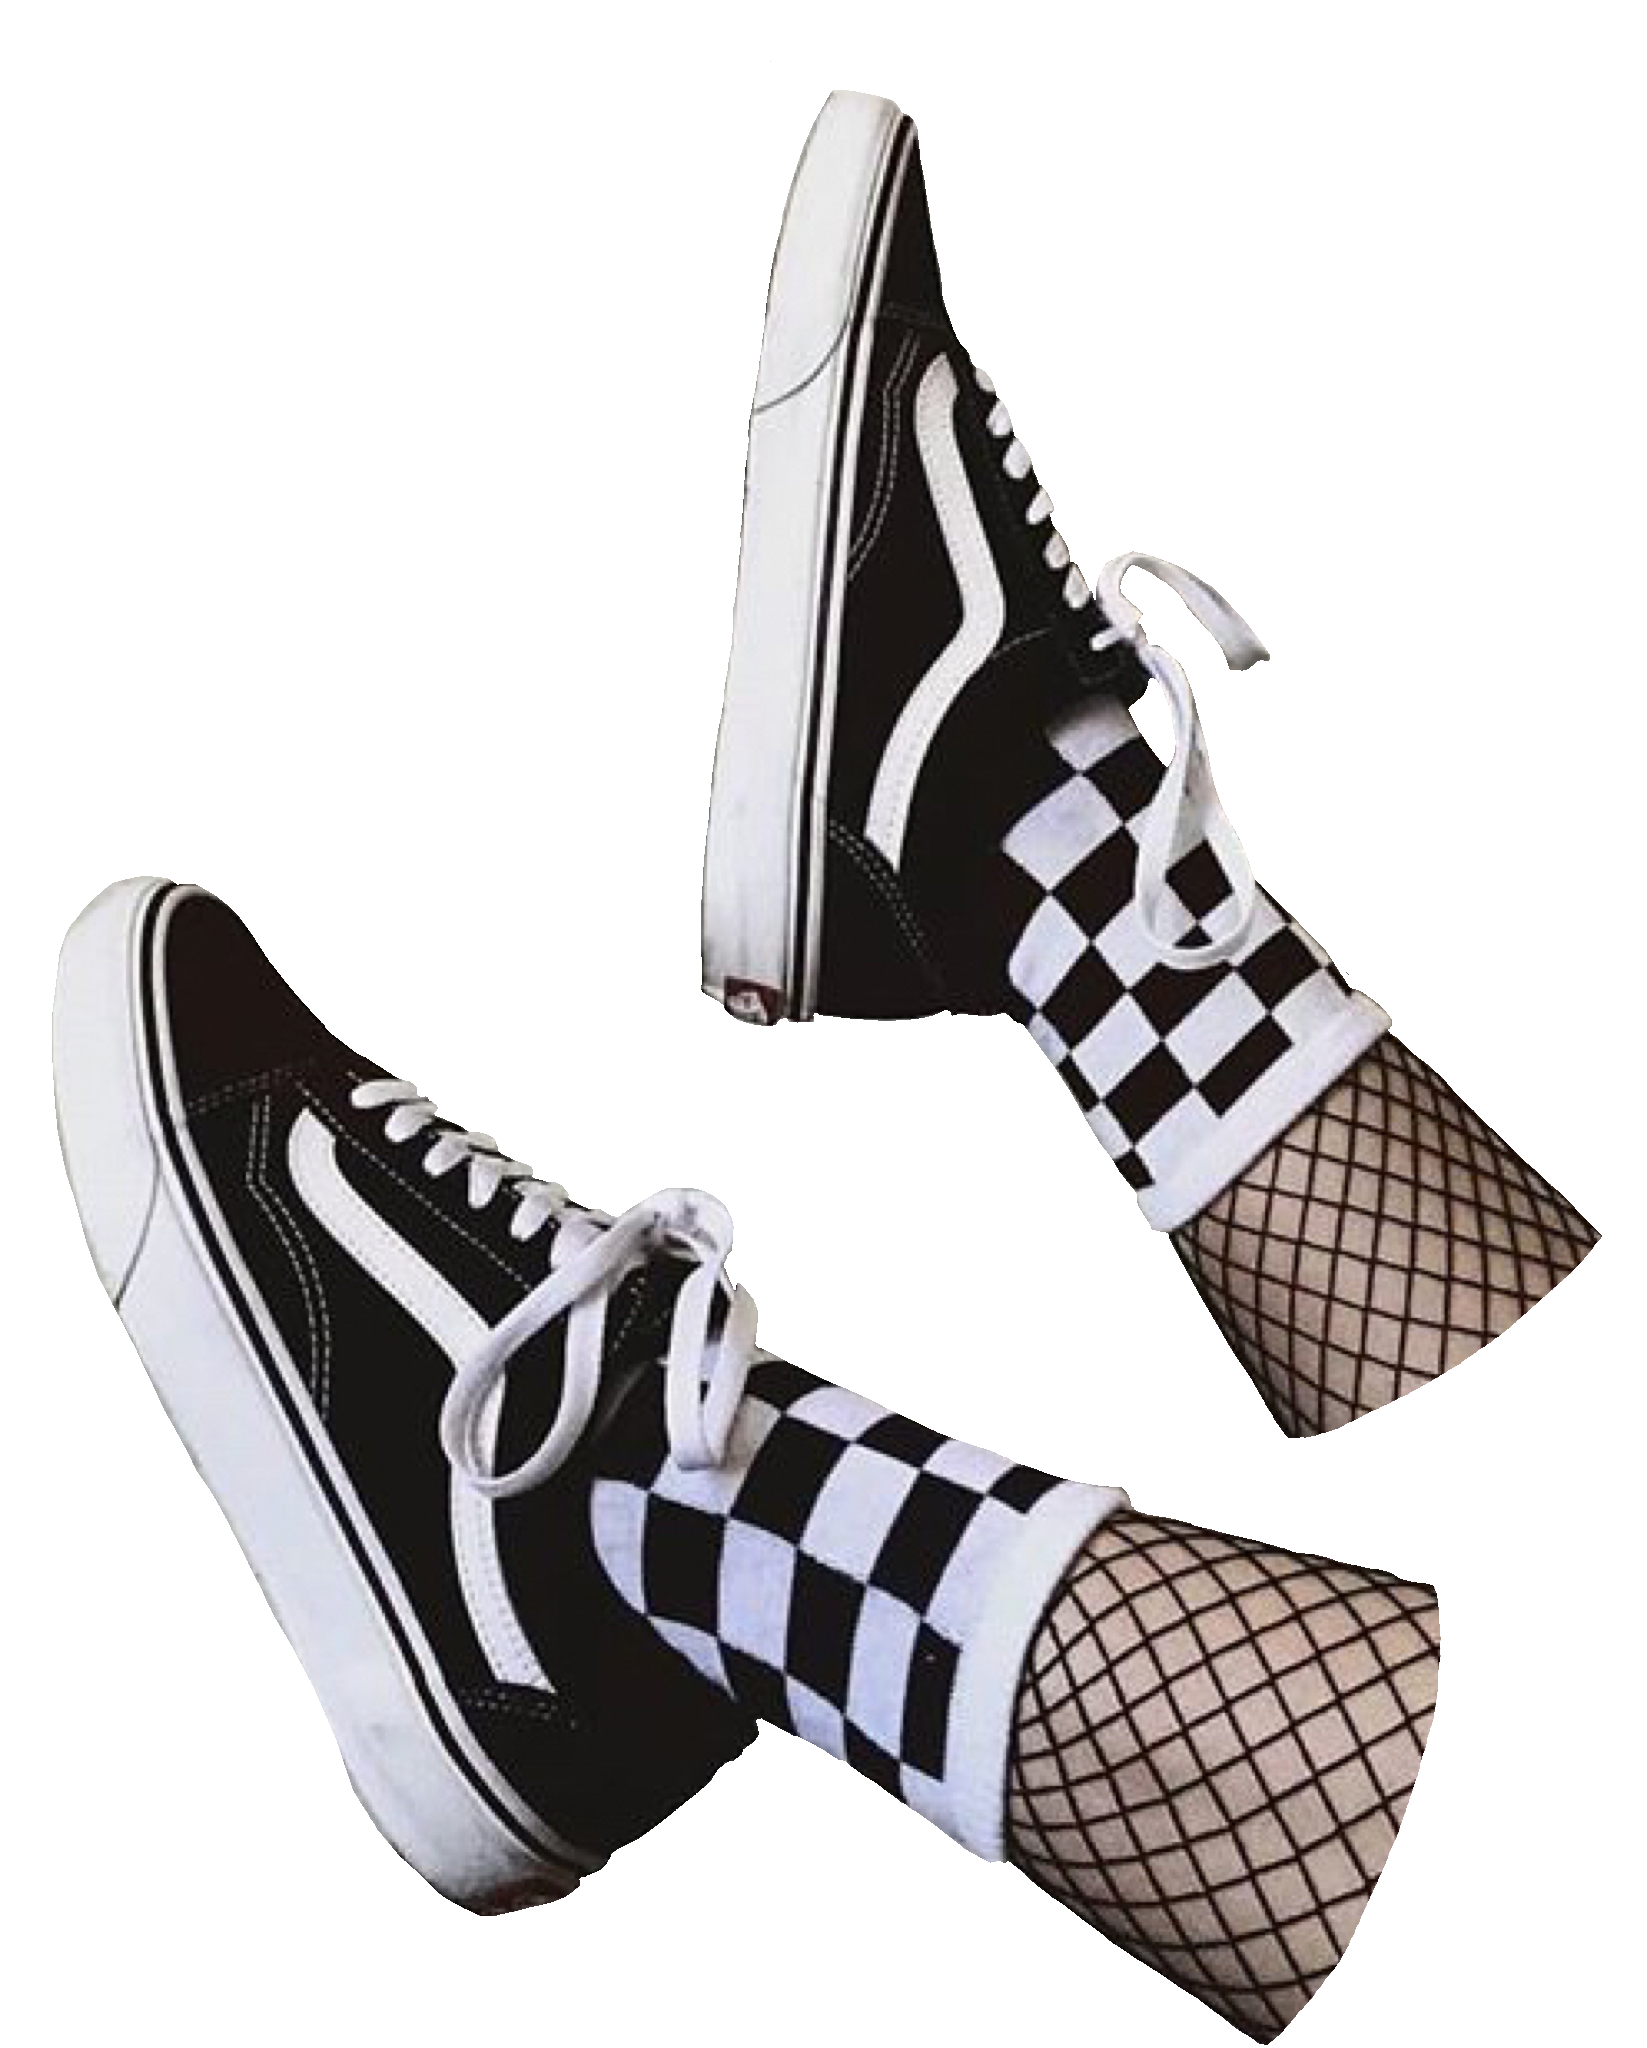 vans shoes png images free download vans shoes png images free download